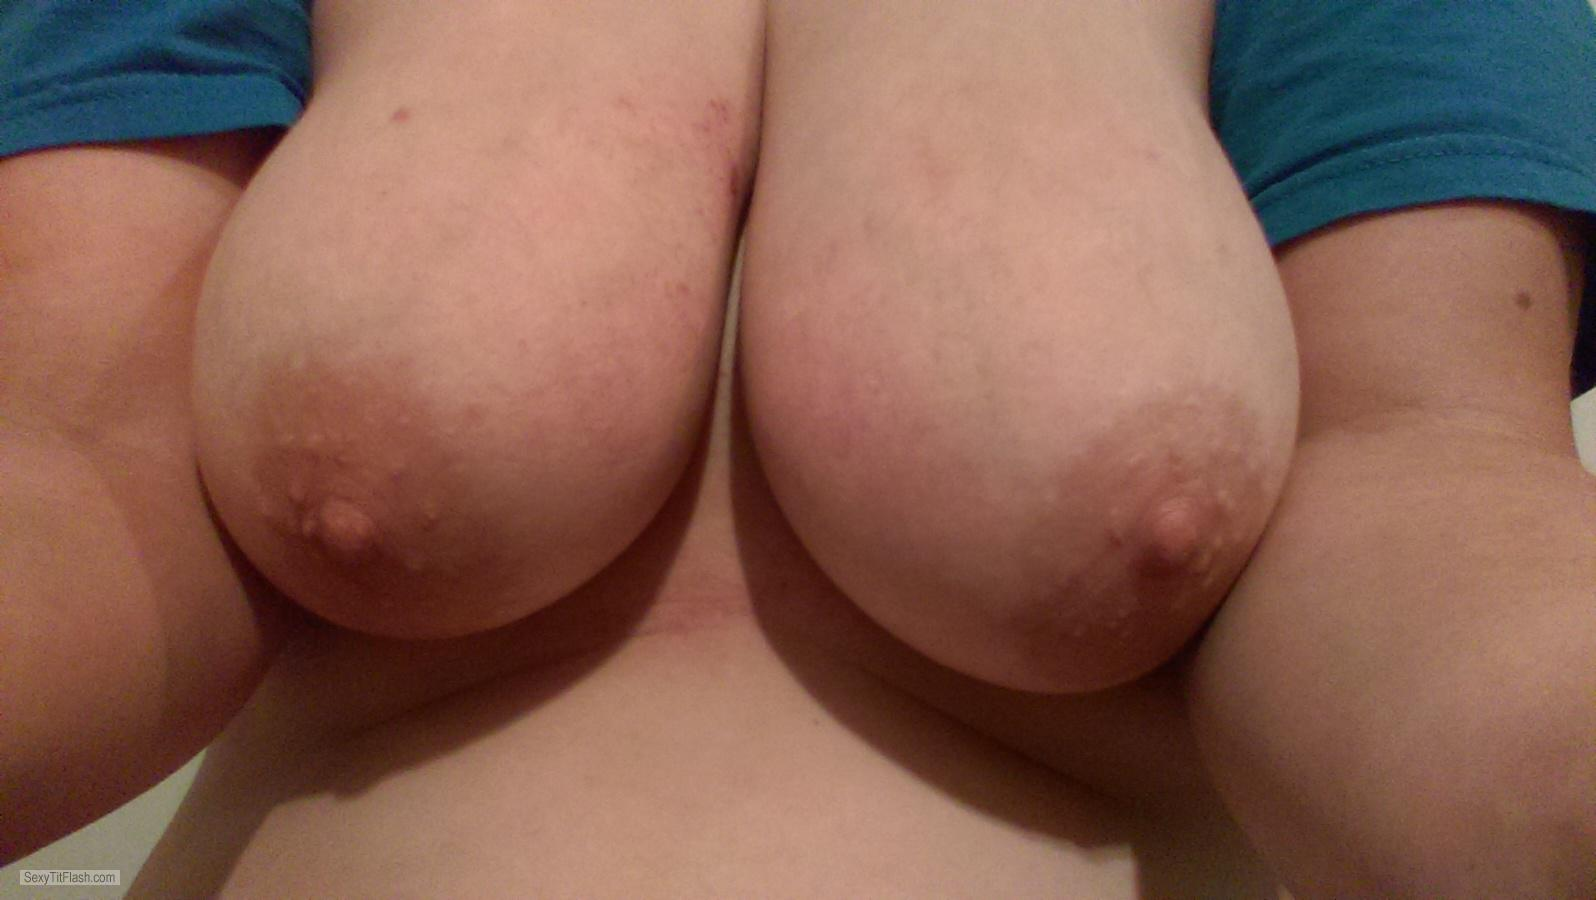 My Big Tits Topless Selfie by D-cakes